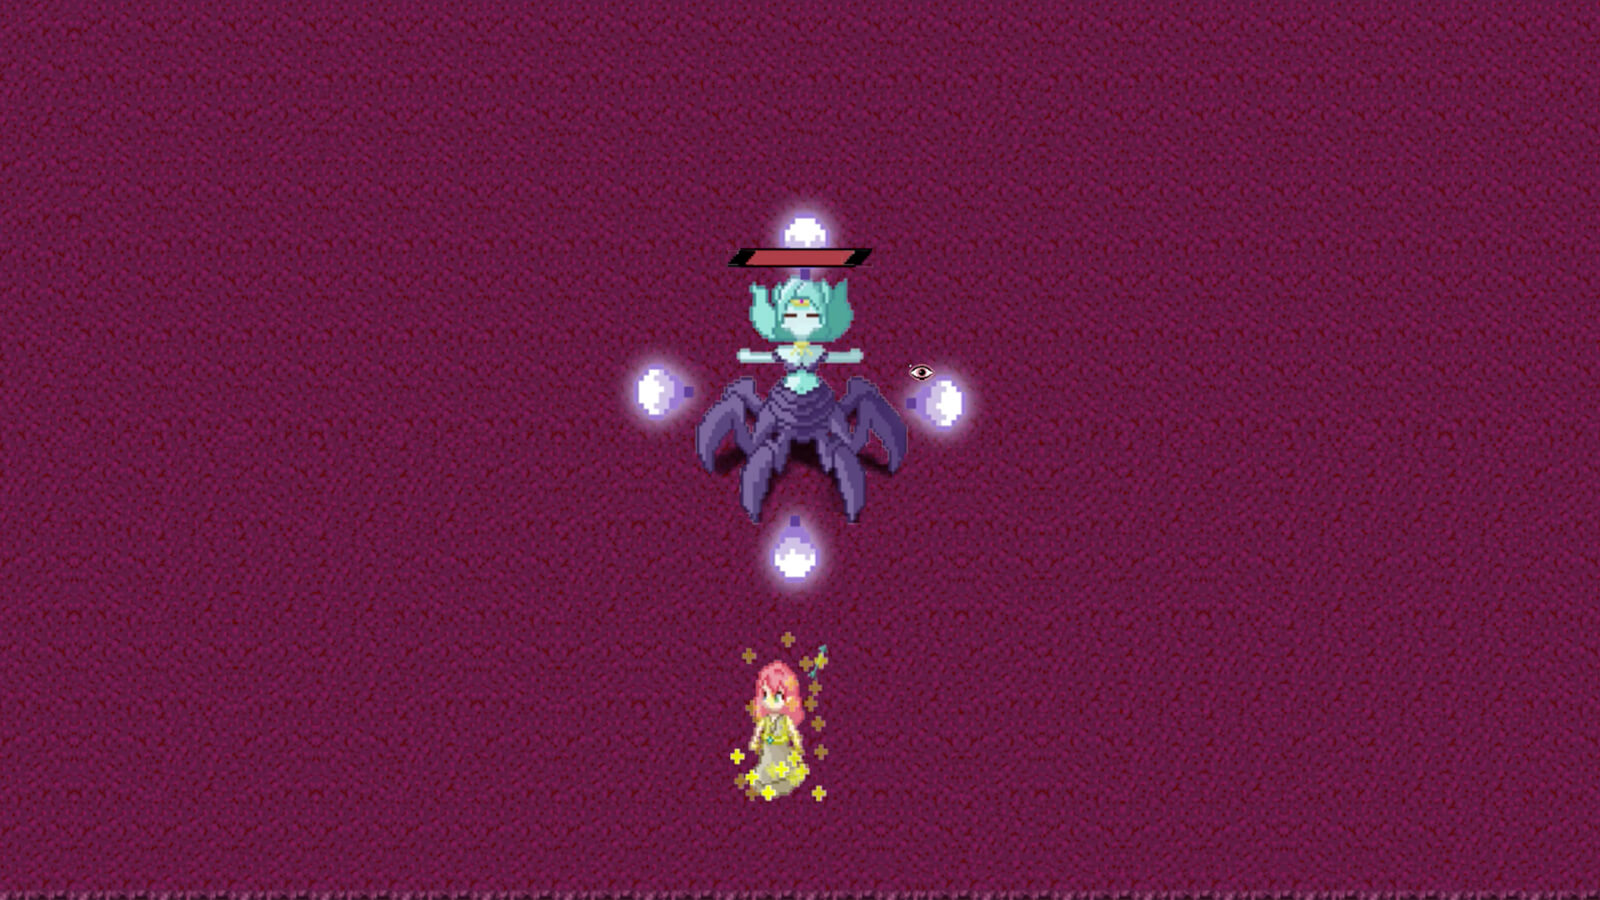 A turquoise-colored boss with six purple legs stands next to a smaller character with red hair